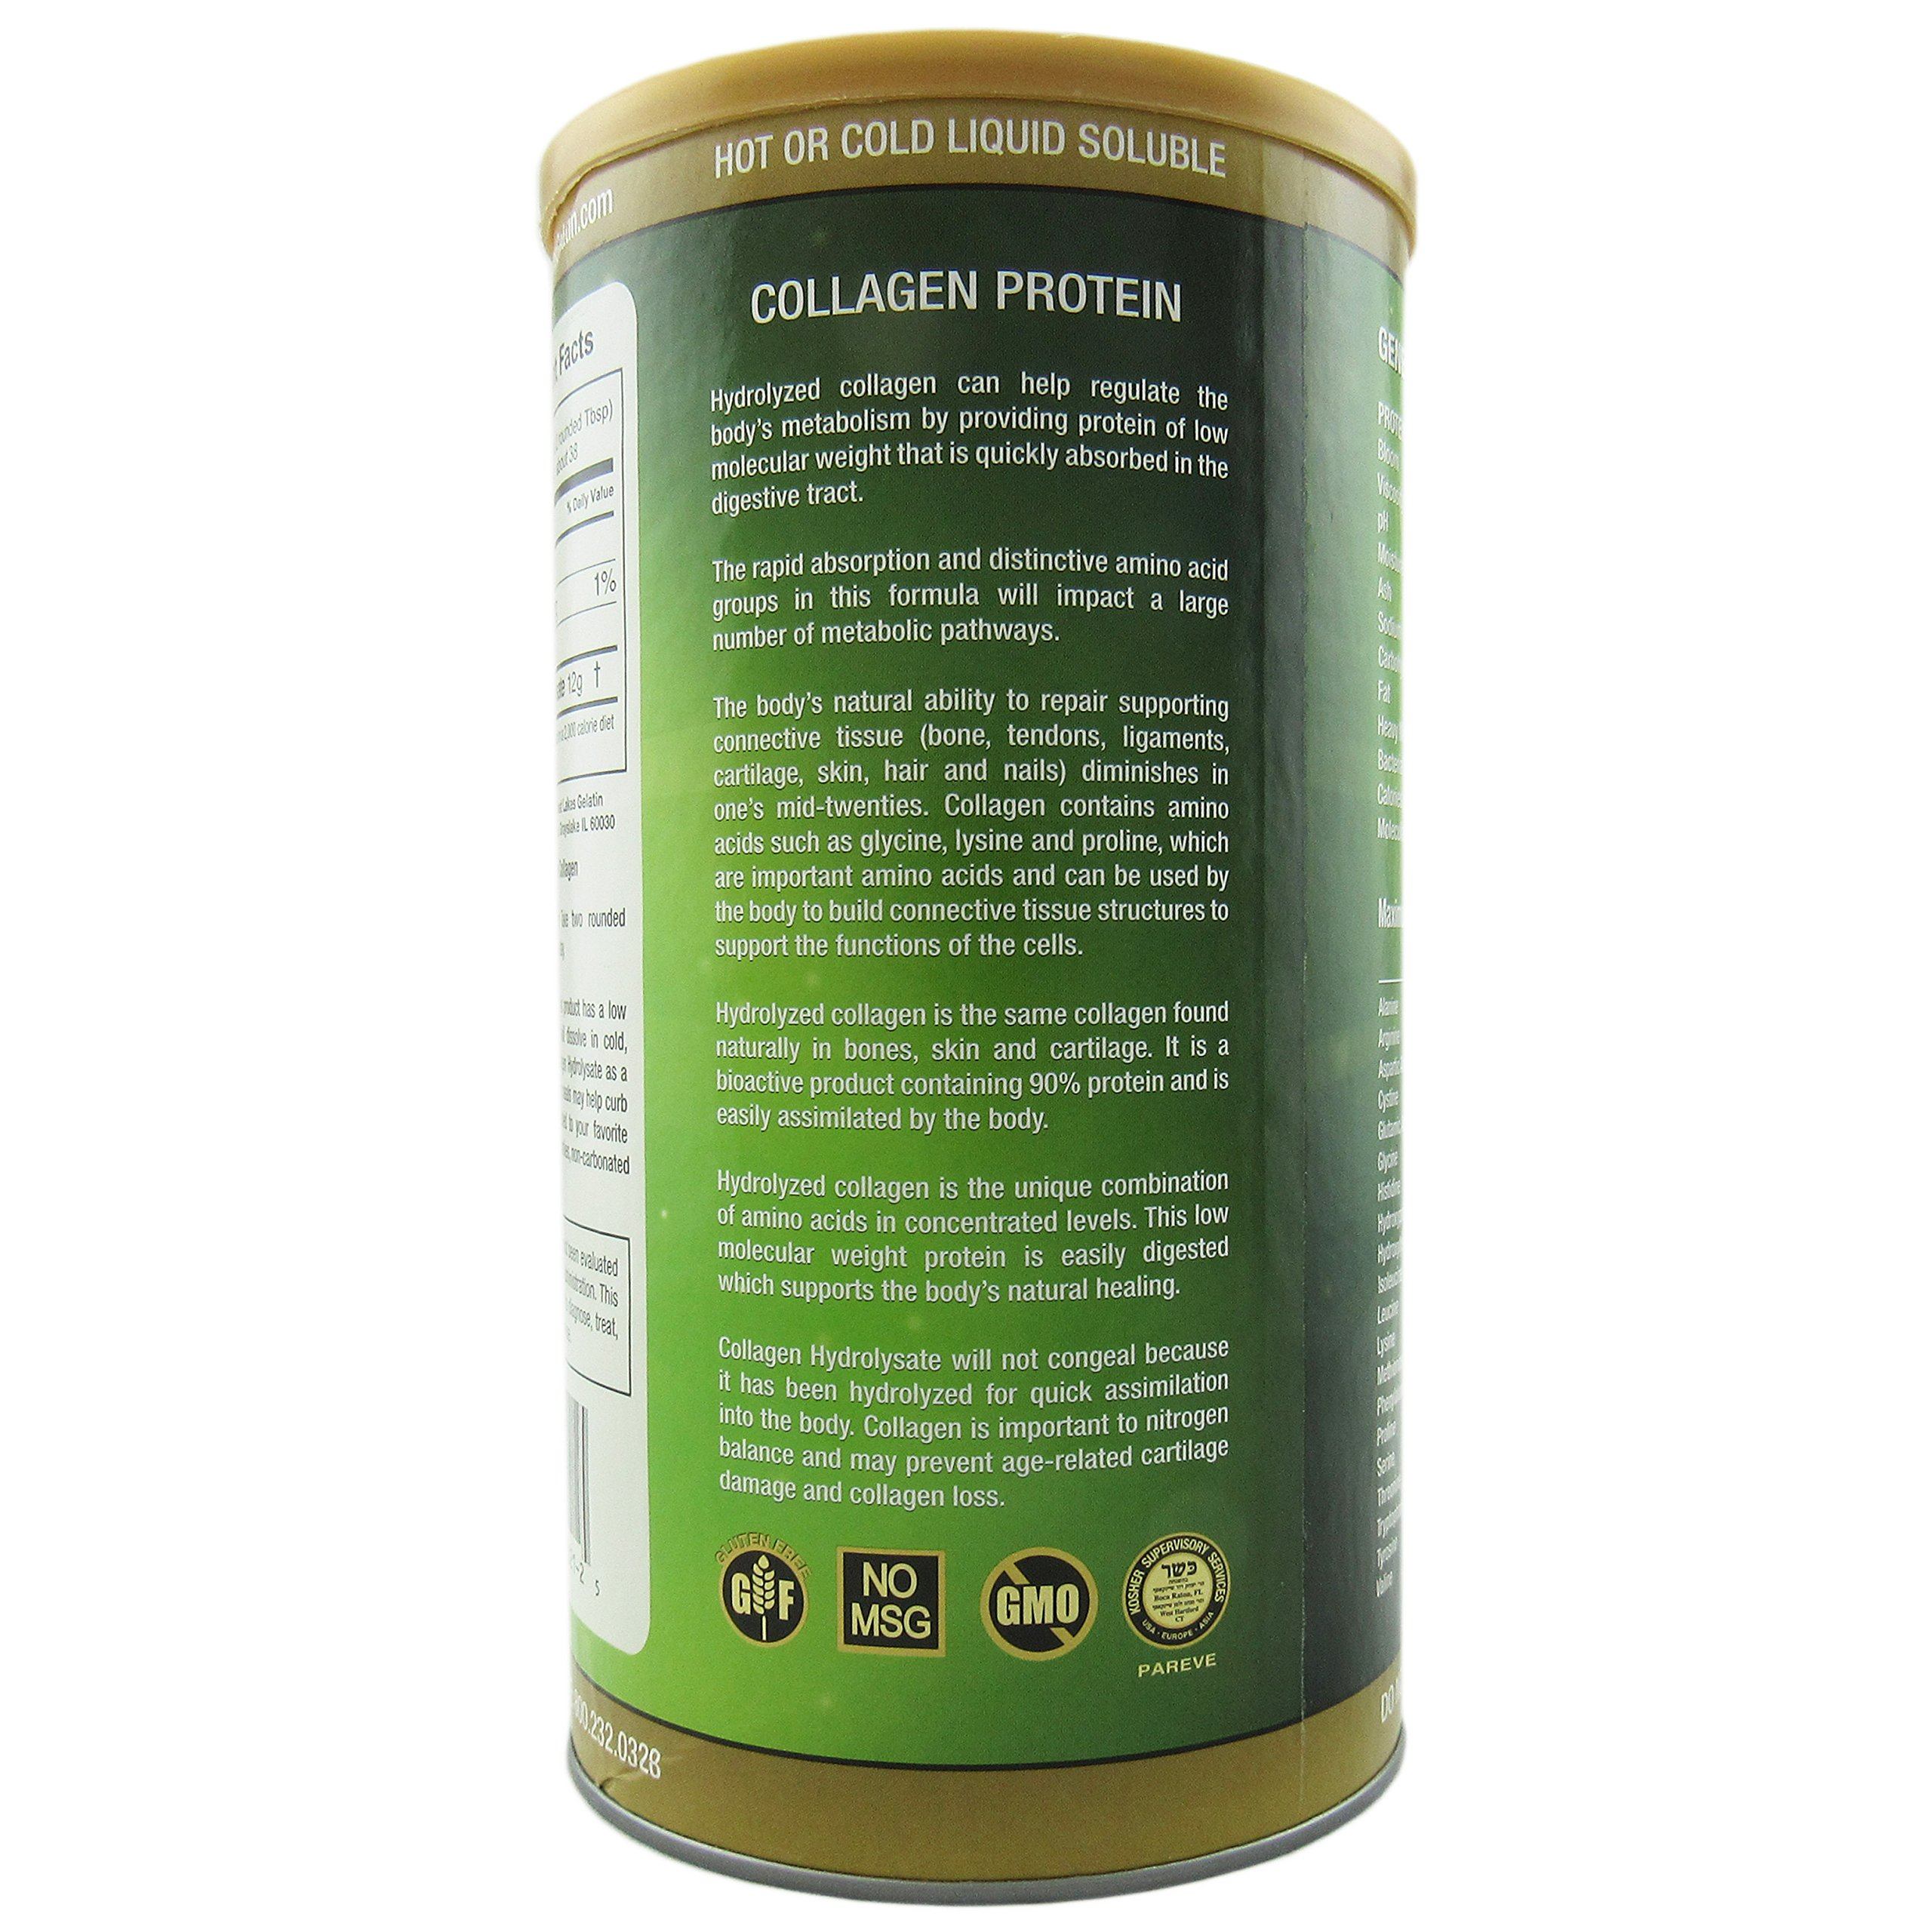 Great Lakes Gelatin Co., Collagen Hydrolysate, Bovine, 16 oz (454 g) - 2pcs by Great Lakes (Image #3)